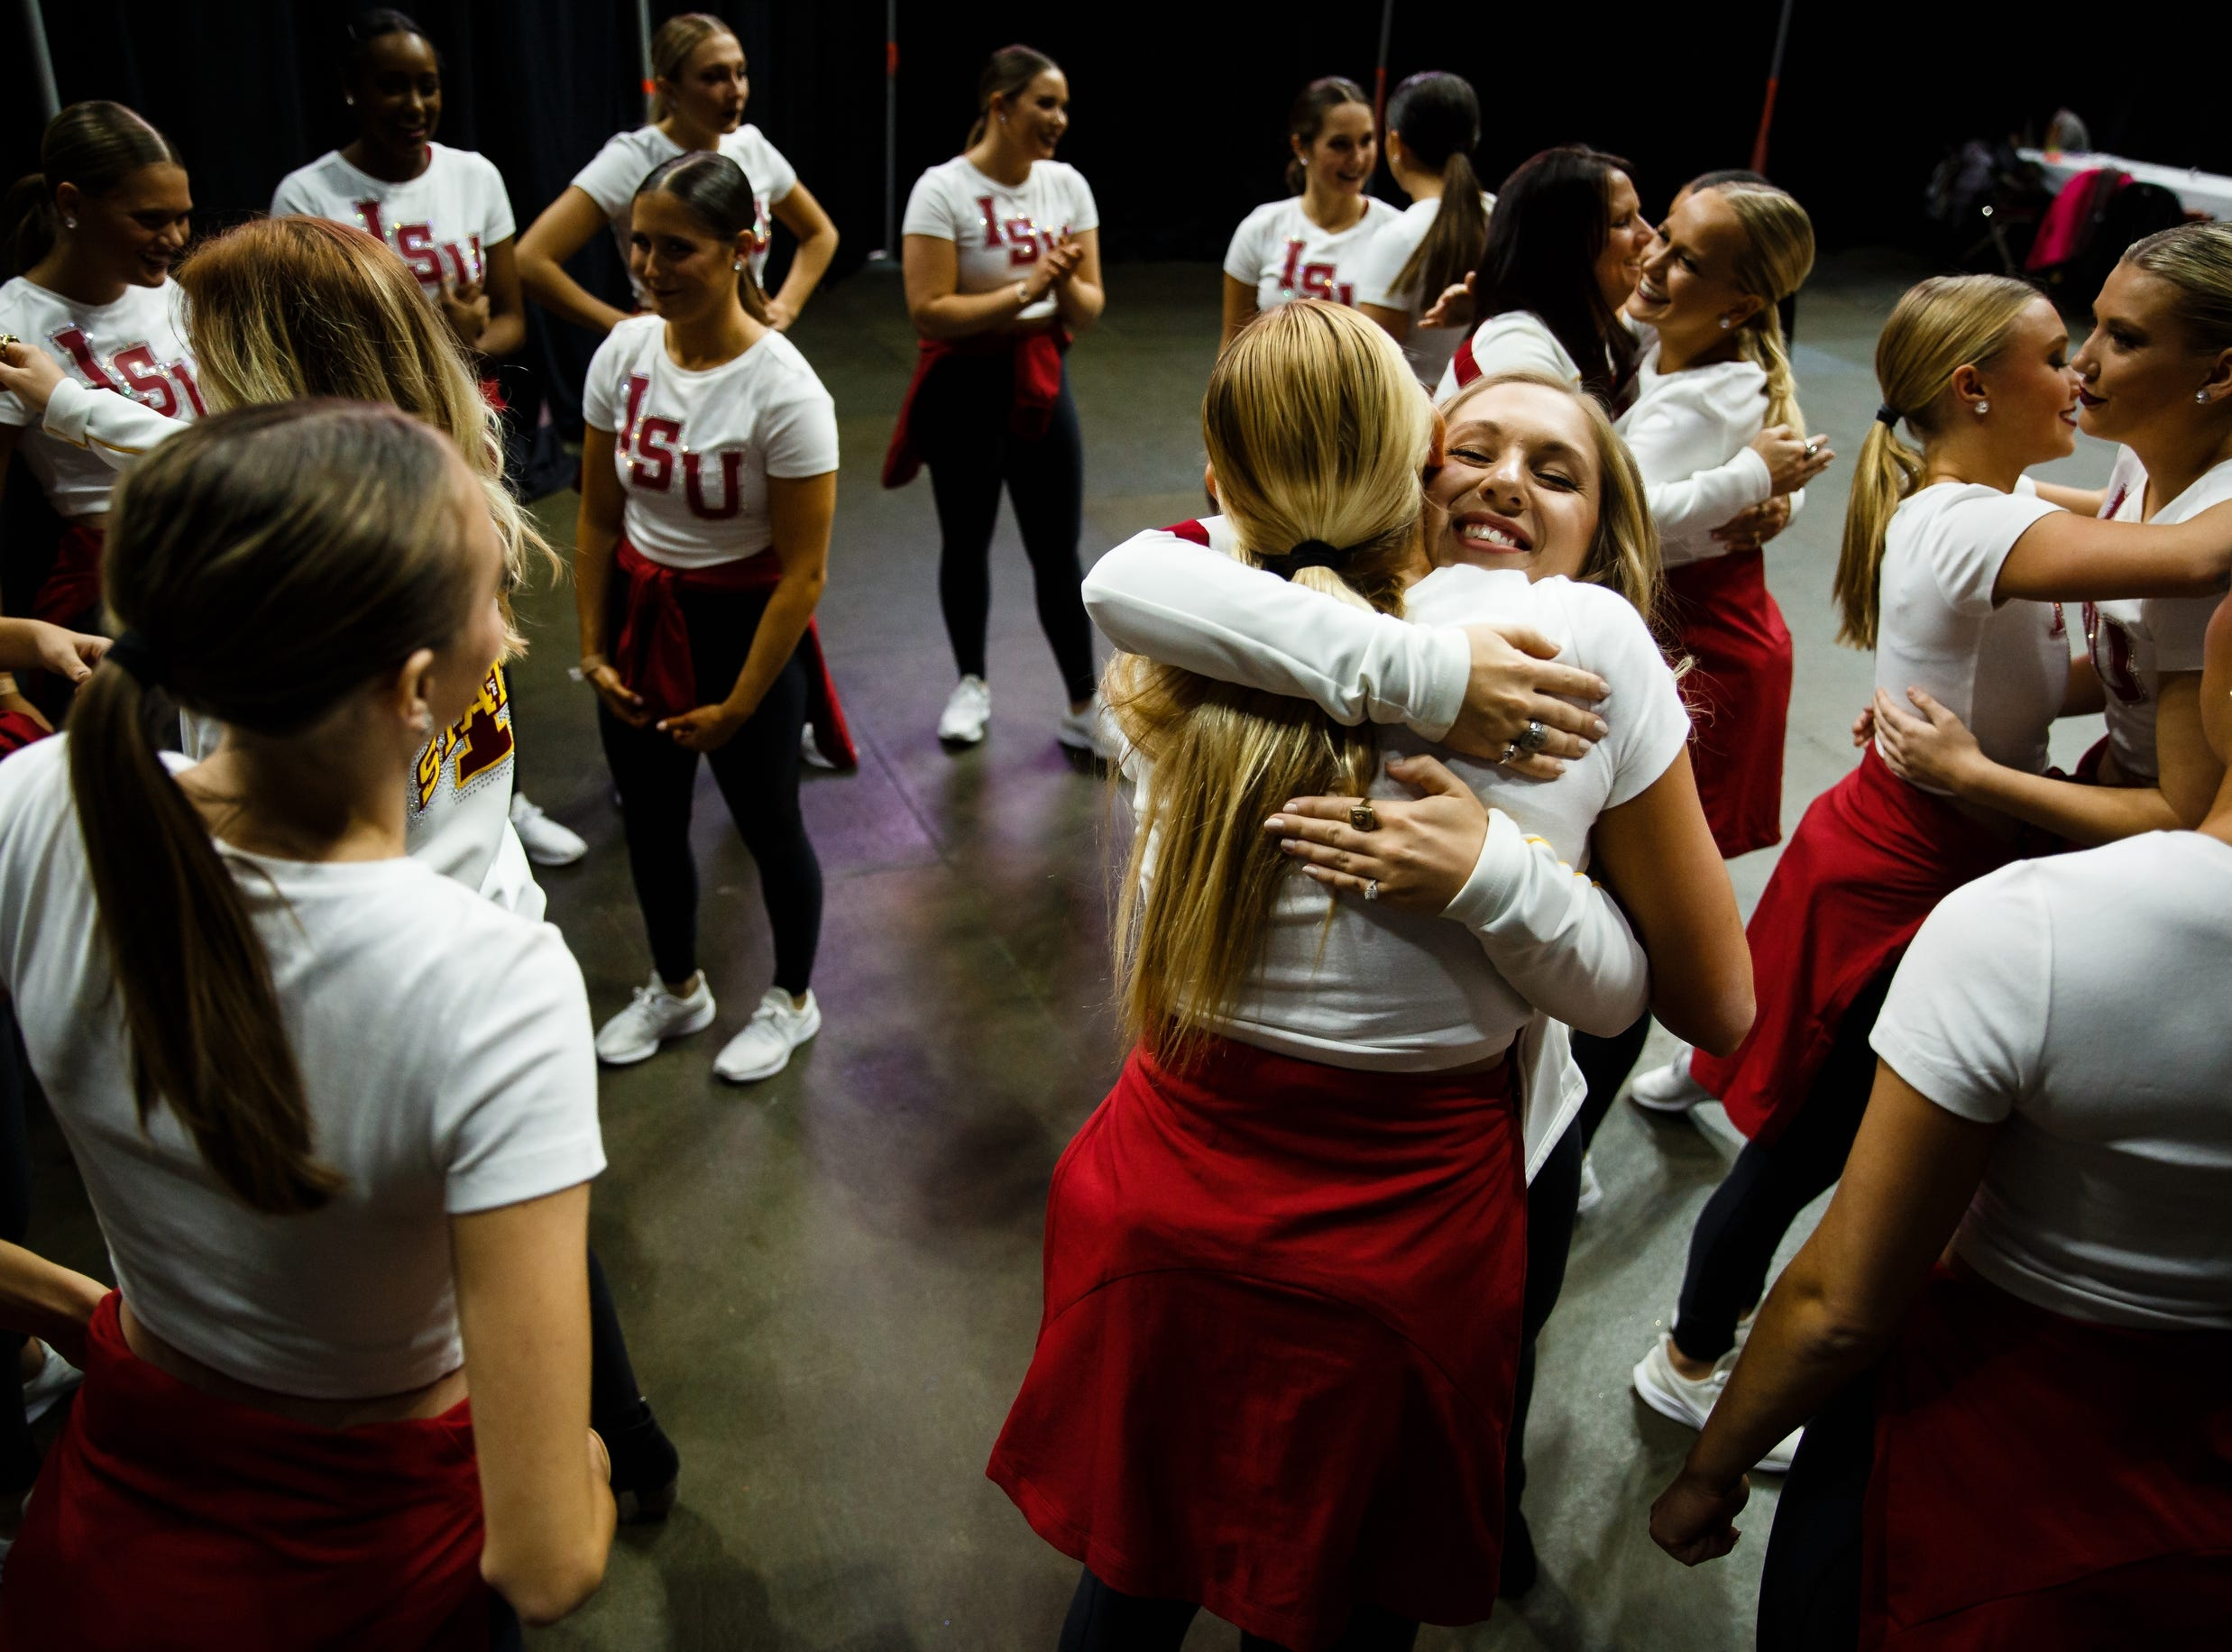 Dancers from Iowa State University warm up before performing at the Iowa Dance State Championships at Wells Fargo Arena on Friday, Nov. 30, 2018, in Des Moines.